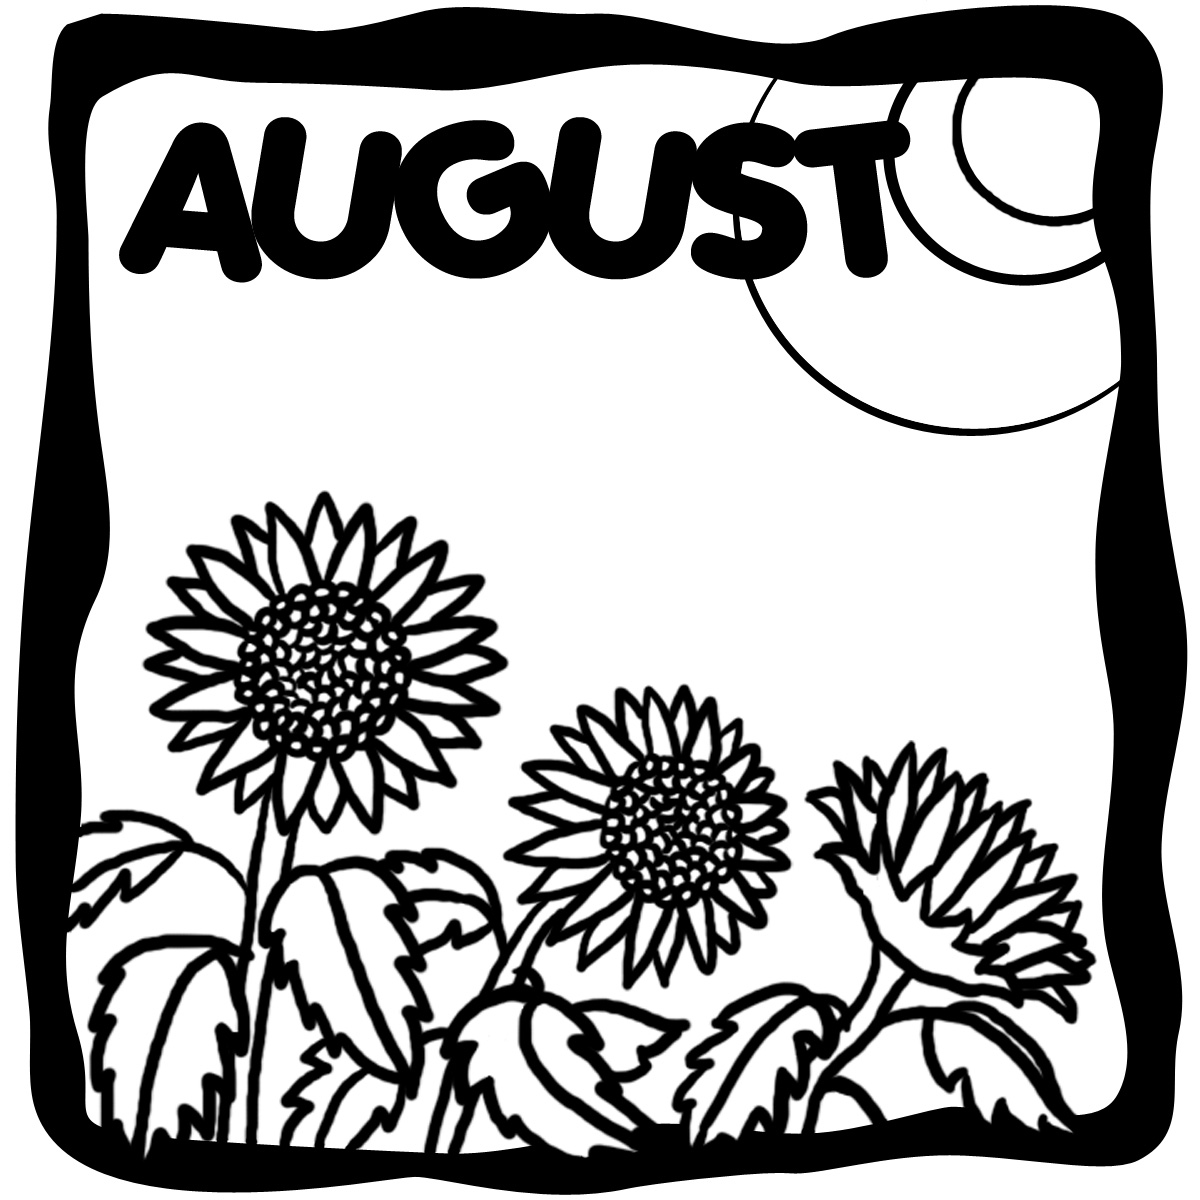 Monthly calendar clipart august